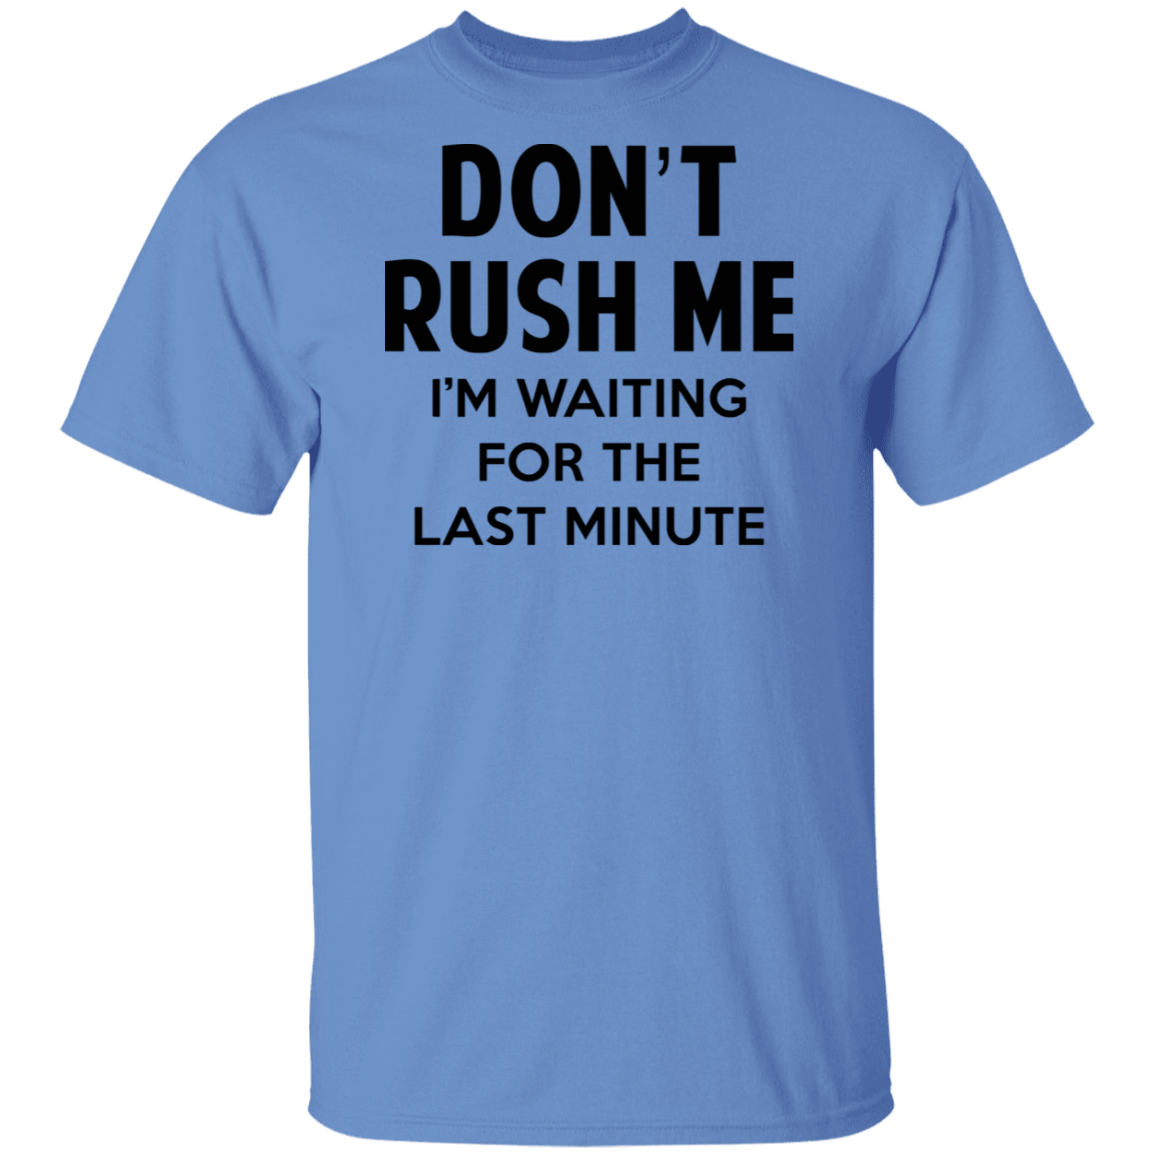 Don't Rush Me I'm Waiting For The Last Minute T-Shirts, Hoodies, Tank 1049-9955-80563636-48160 - Tee Ript